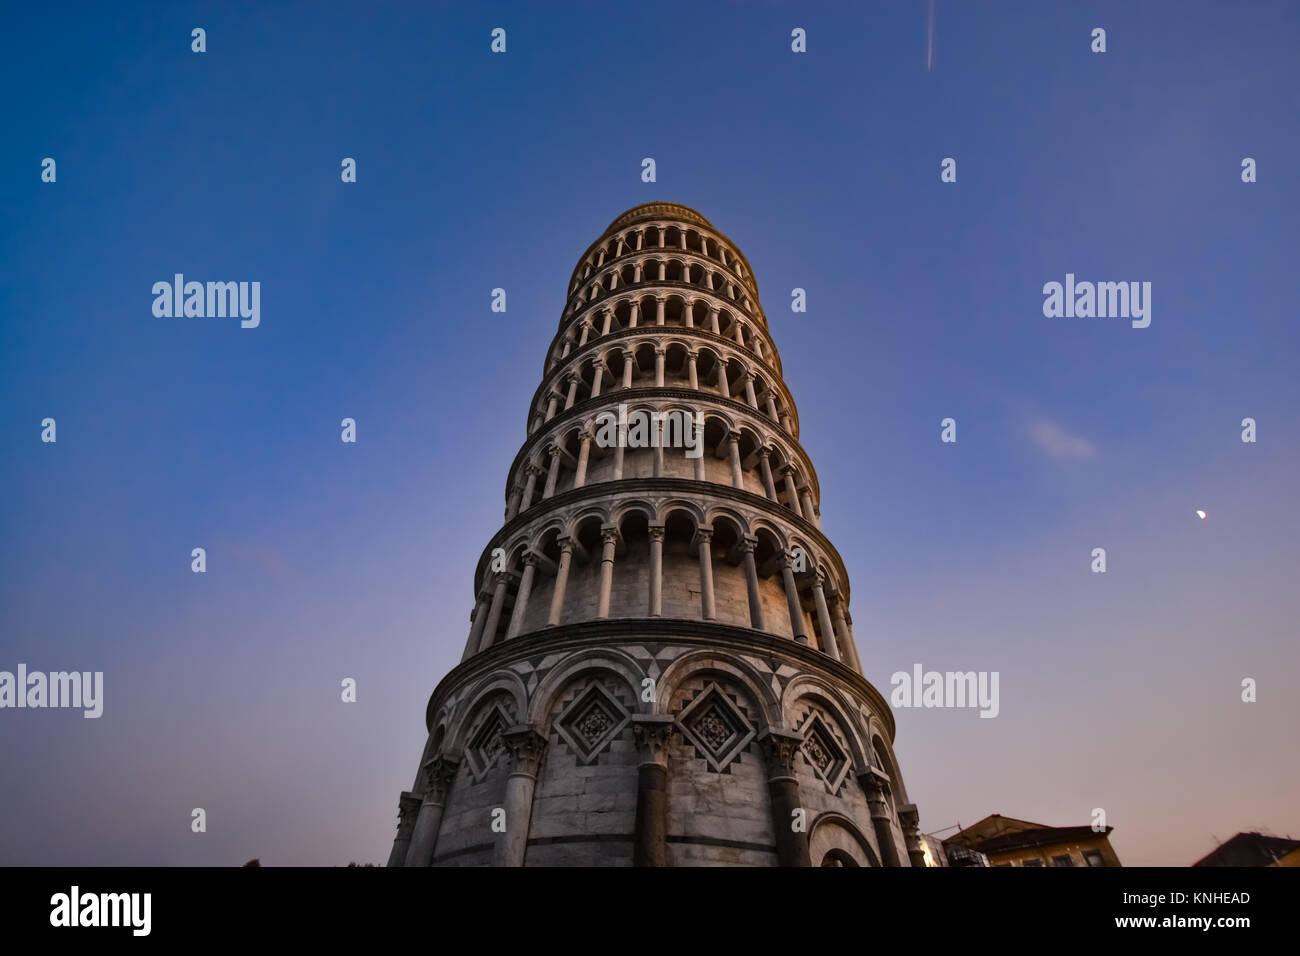 The leaning tower of Pisa, Italy in the piazza del duomo in the Tuscan region as night falls - Stock Image